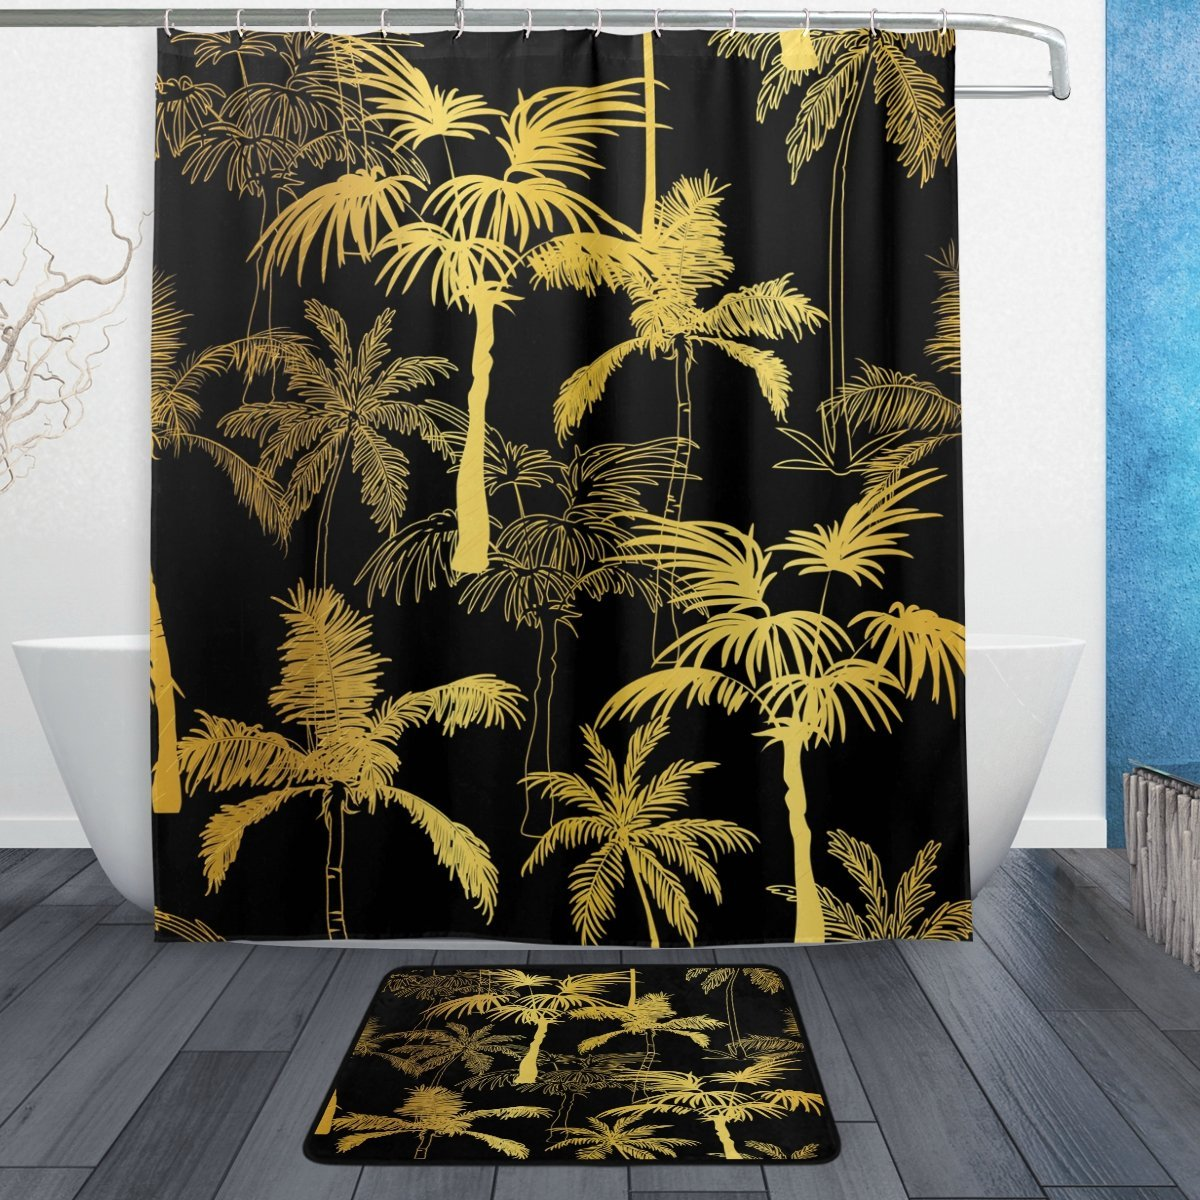 Us 18 39 20 Off Golden Black Palm Tree Waterproof Polyester Fabric Shower Curtain With Hooks Doormat Bath Floor Mat Bathroom Home Decor In Shower